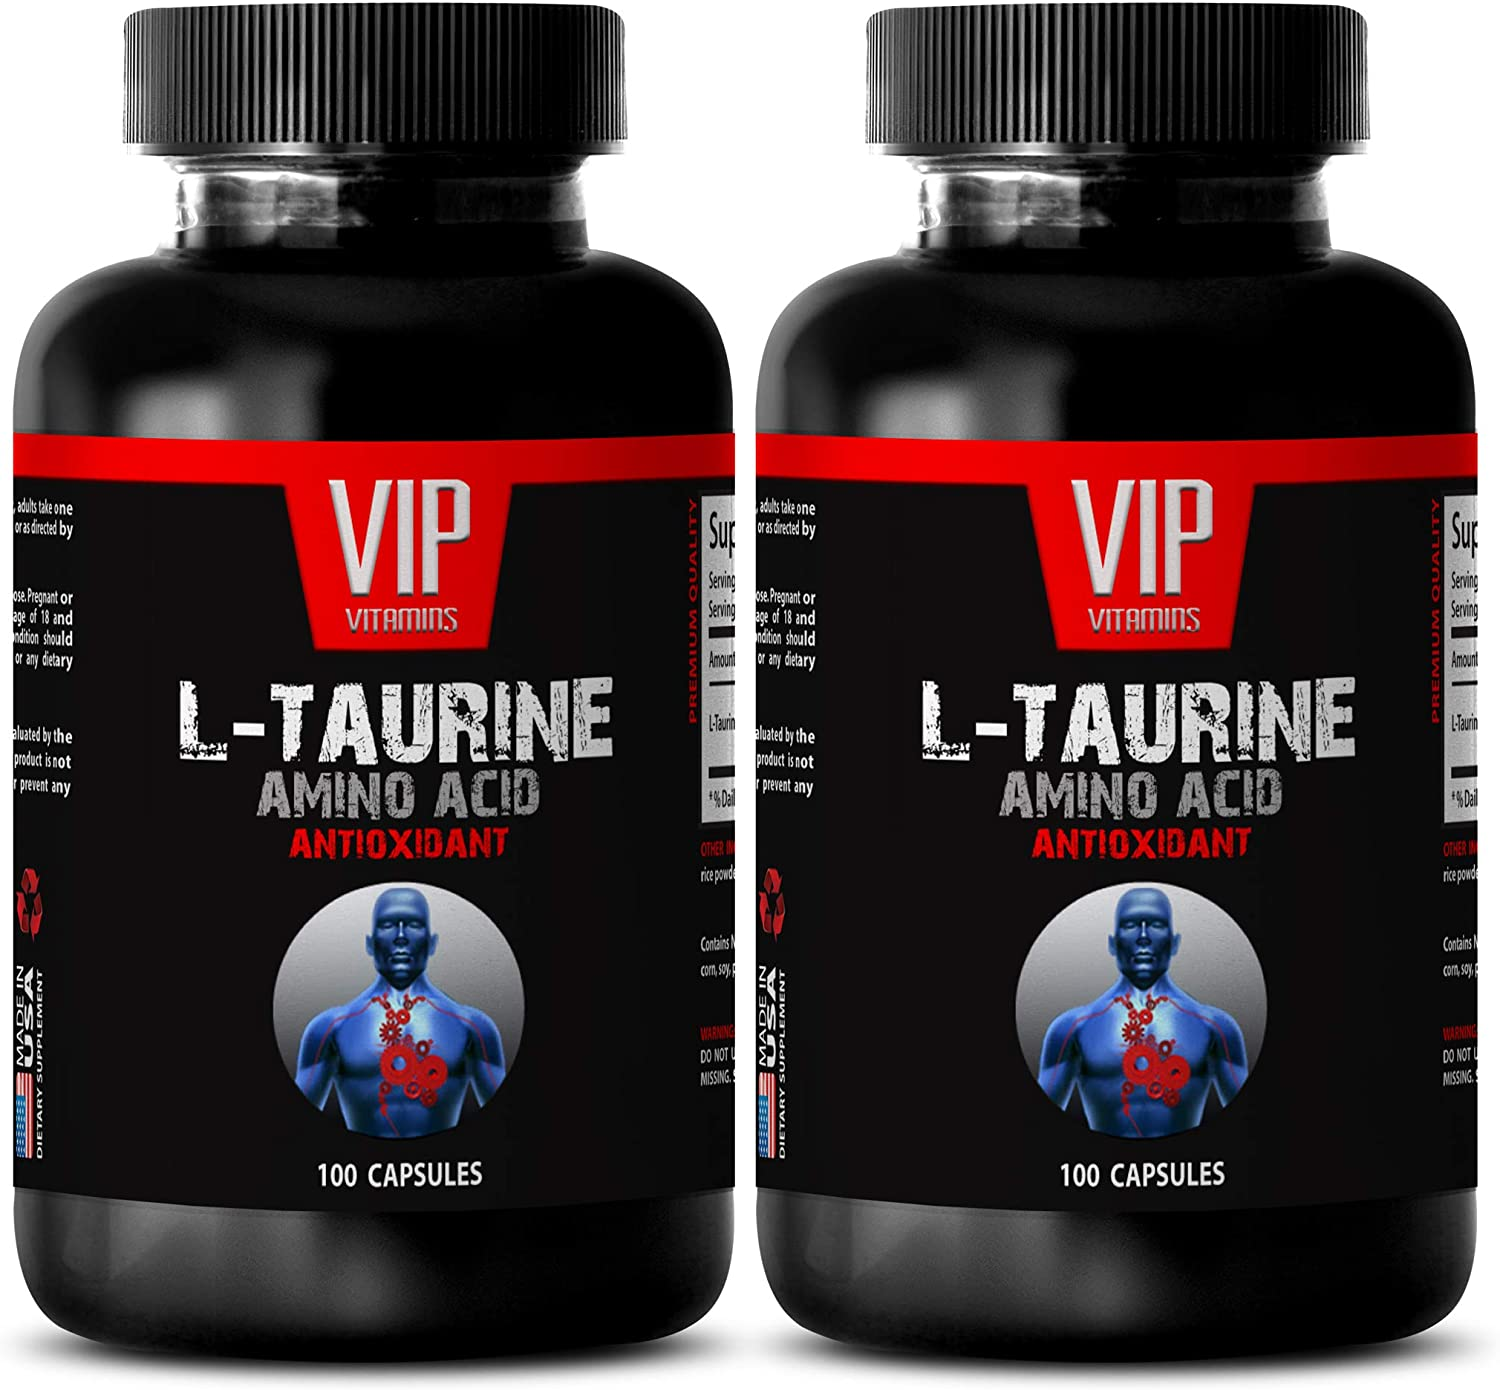 Weight Loss Fat Burner for Men Amino Dedication - L-Taurine Al sold out. 500MG Acid